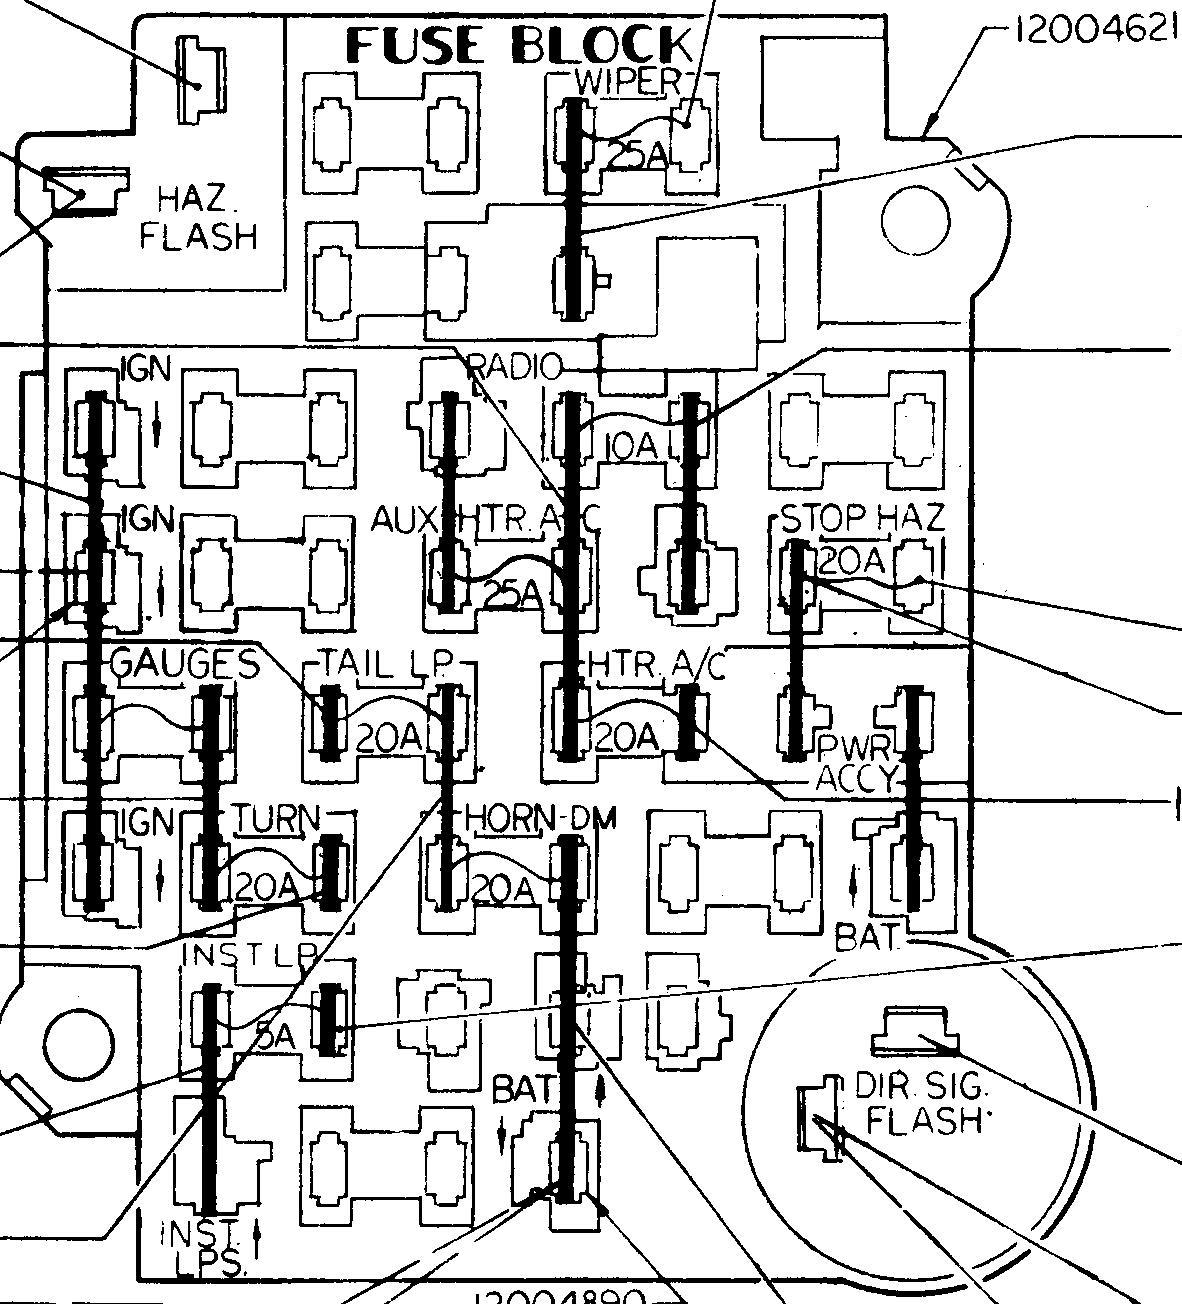 hight resolution of gm ato style fuse block 1994 chevy s10 fuse box diagram gm fuse box diagram